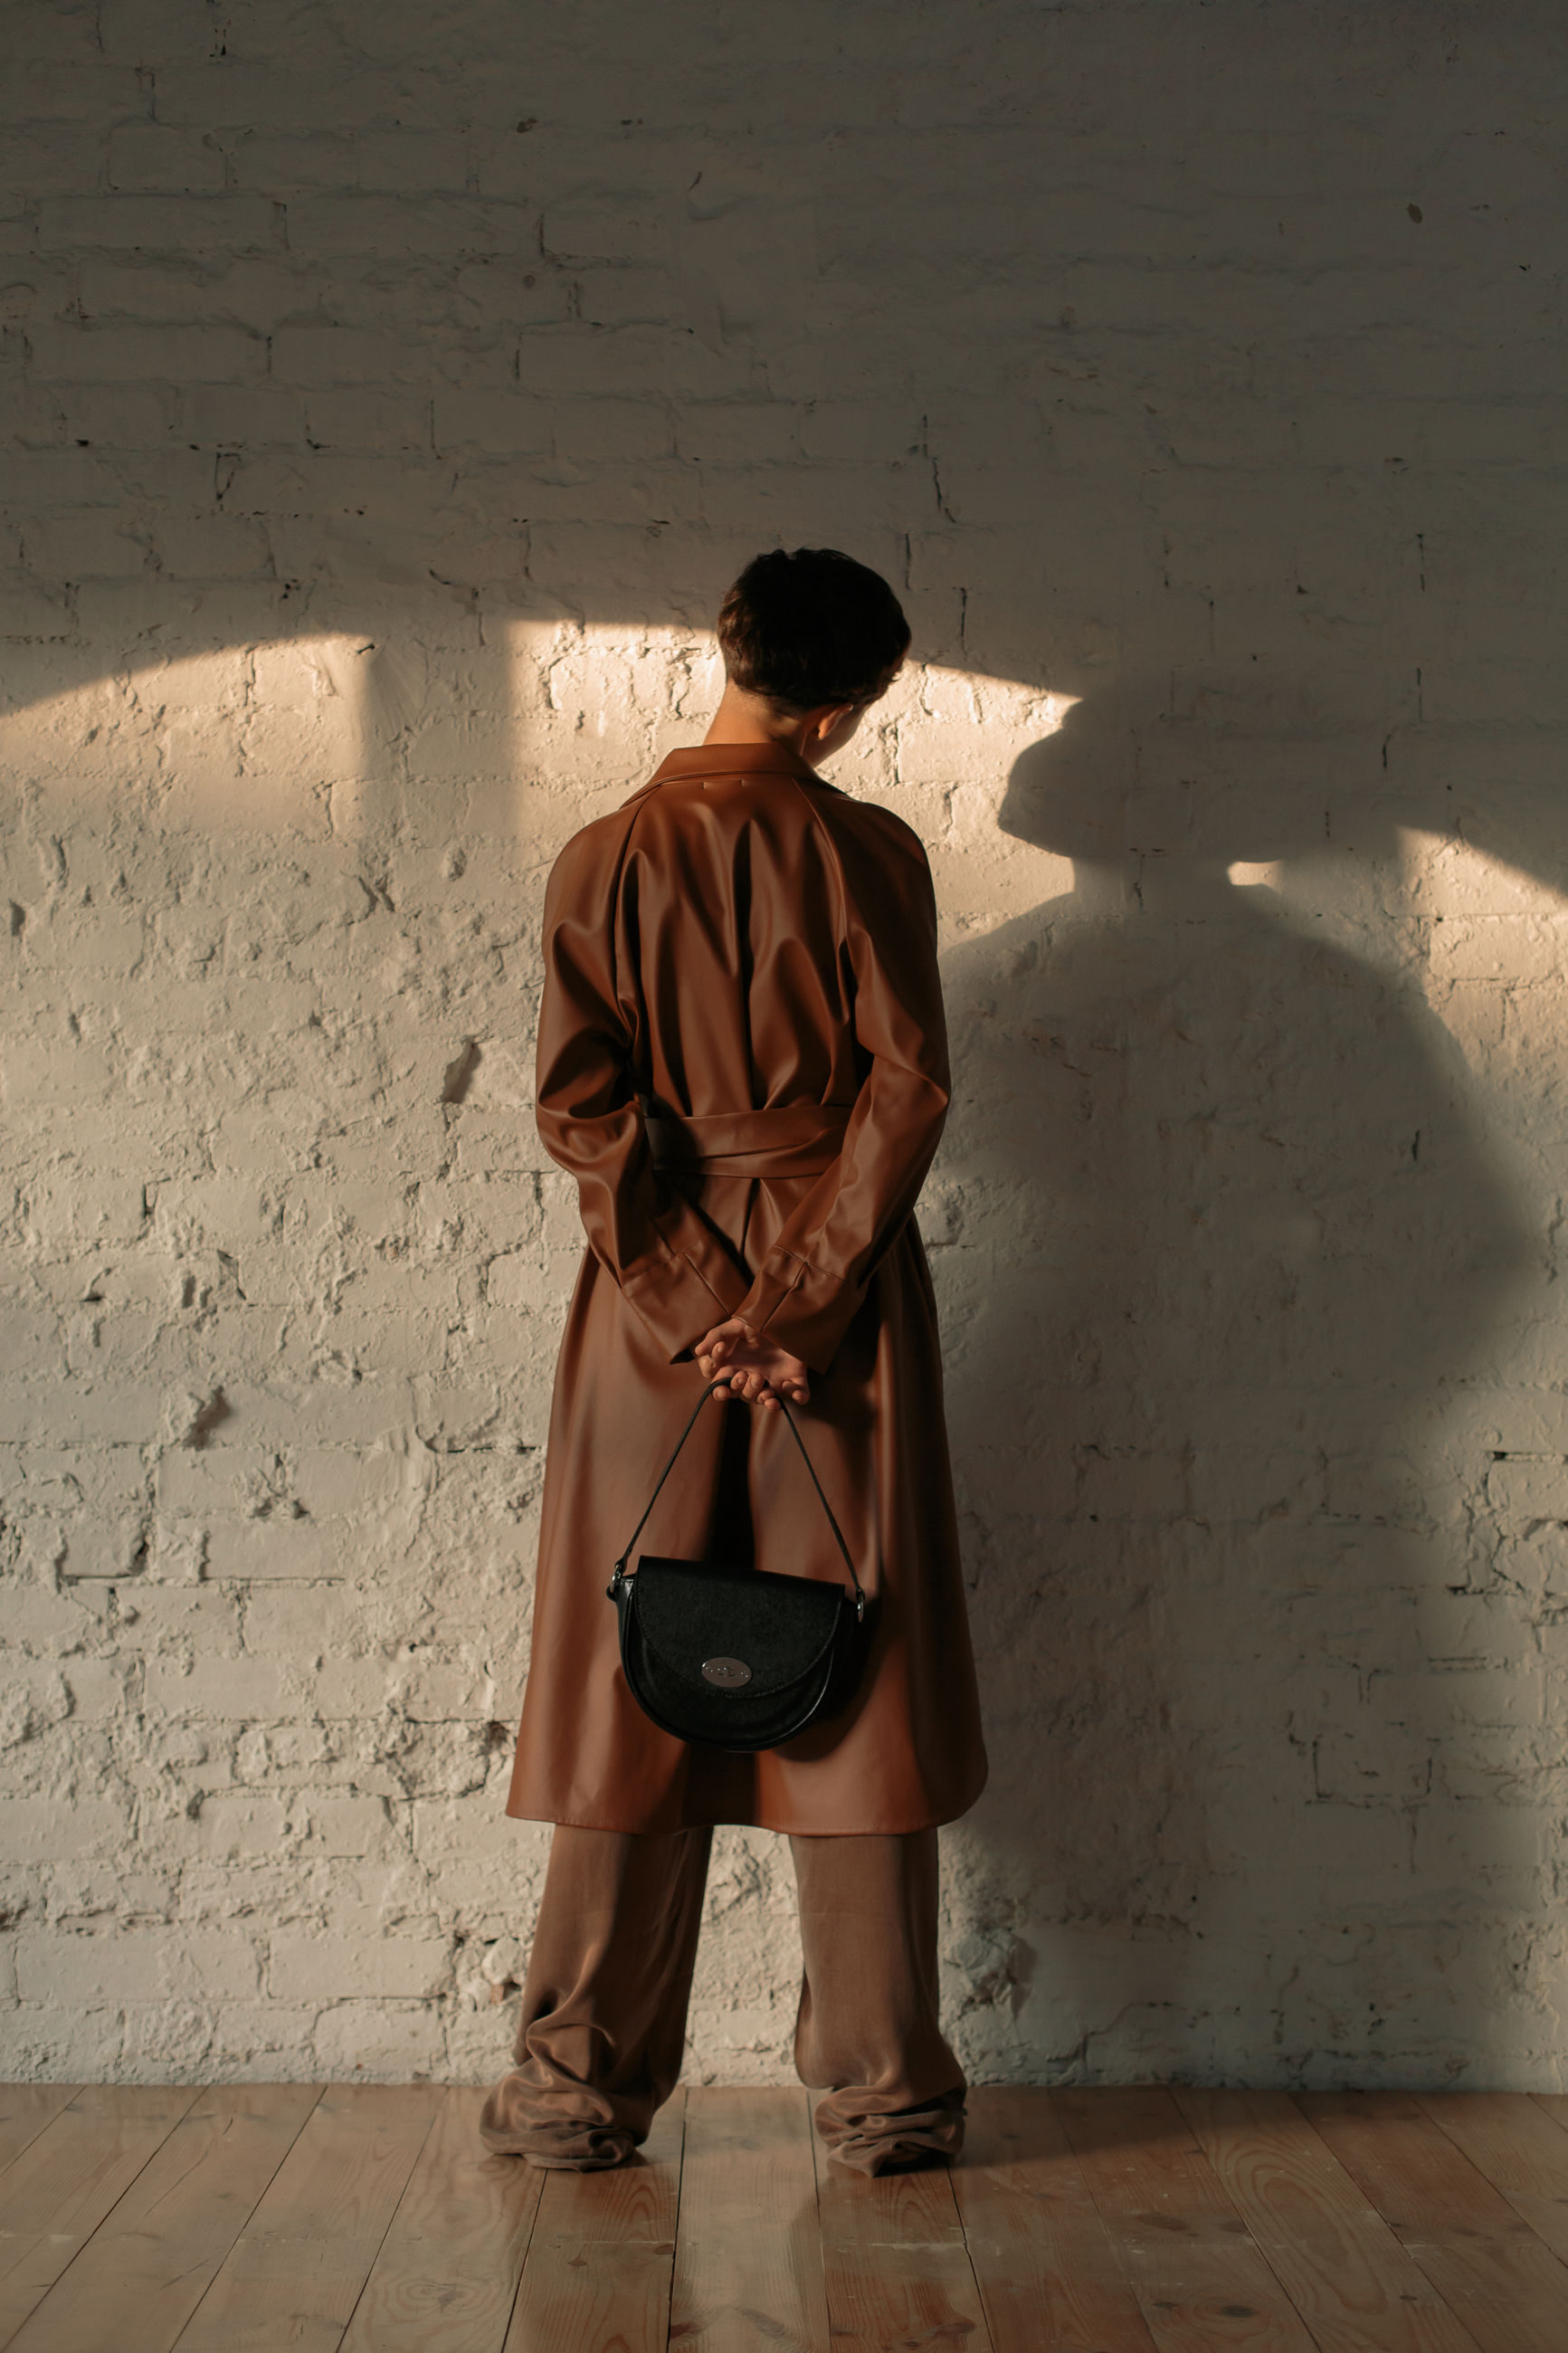 one person, real people, wall - building feature, full length, rear view, standing, men, architecture, indoors, lifestyles, sunlight, built structure, shadow, day, leisure activity, males, nature, clothing, casual clothing, contemplation